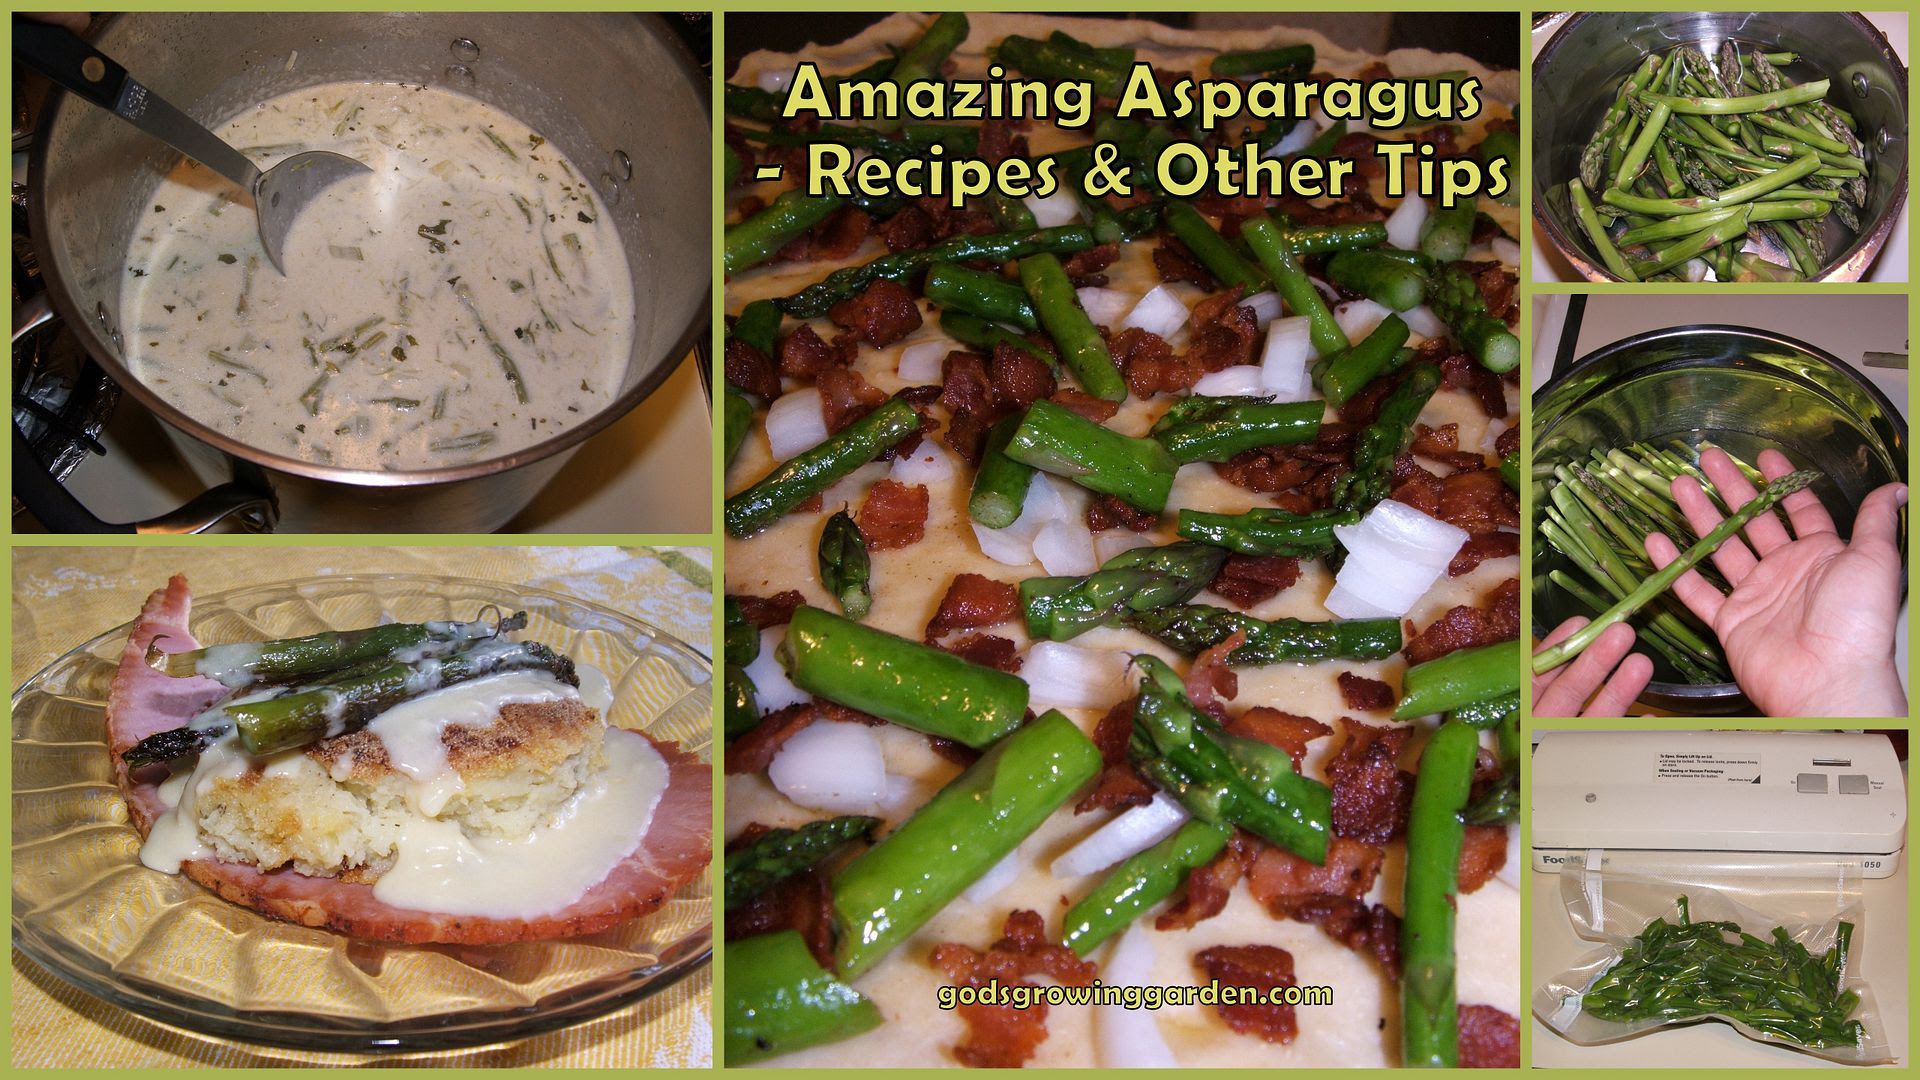 Amazing Asparagus by Angie Ouellette-Tower for godsgrowinggarden.com photo 2013-05-19_zps66a6cbd4.jpg